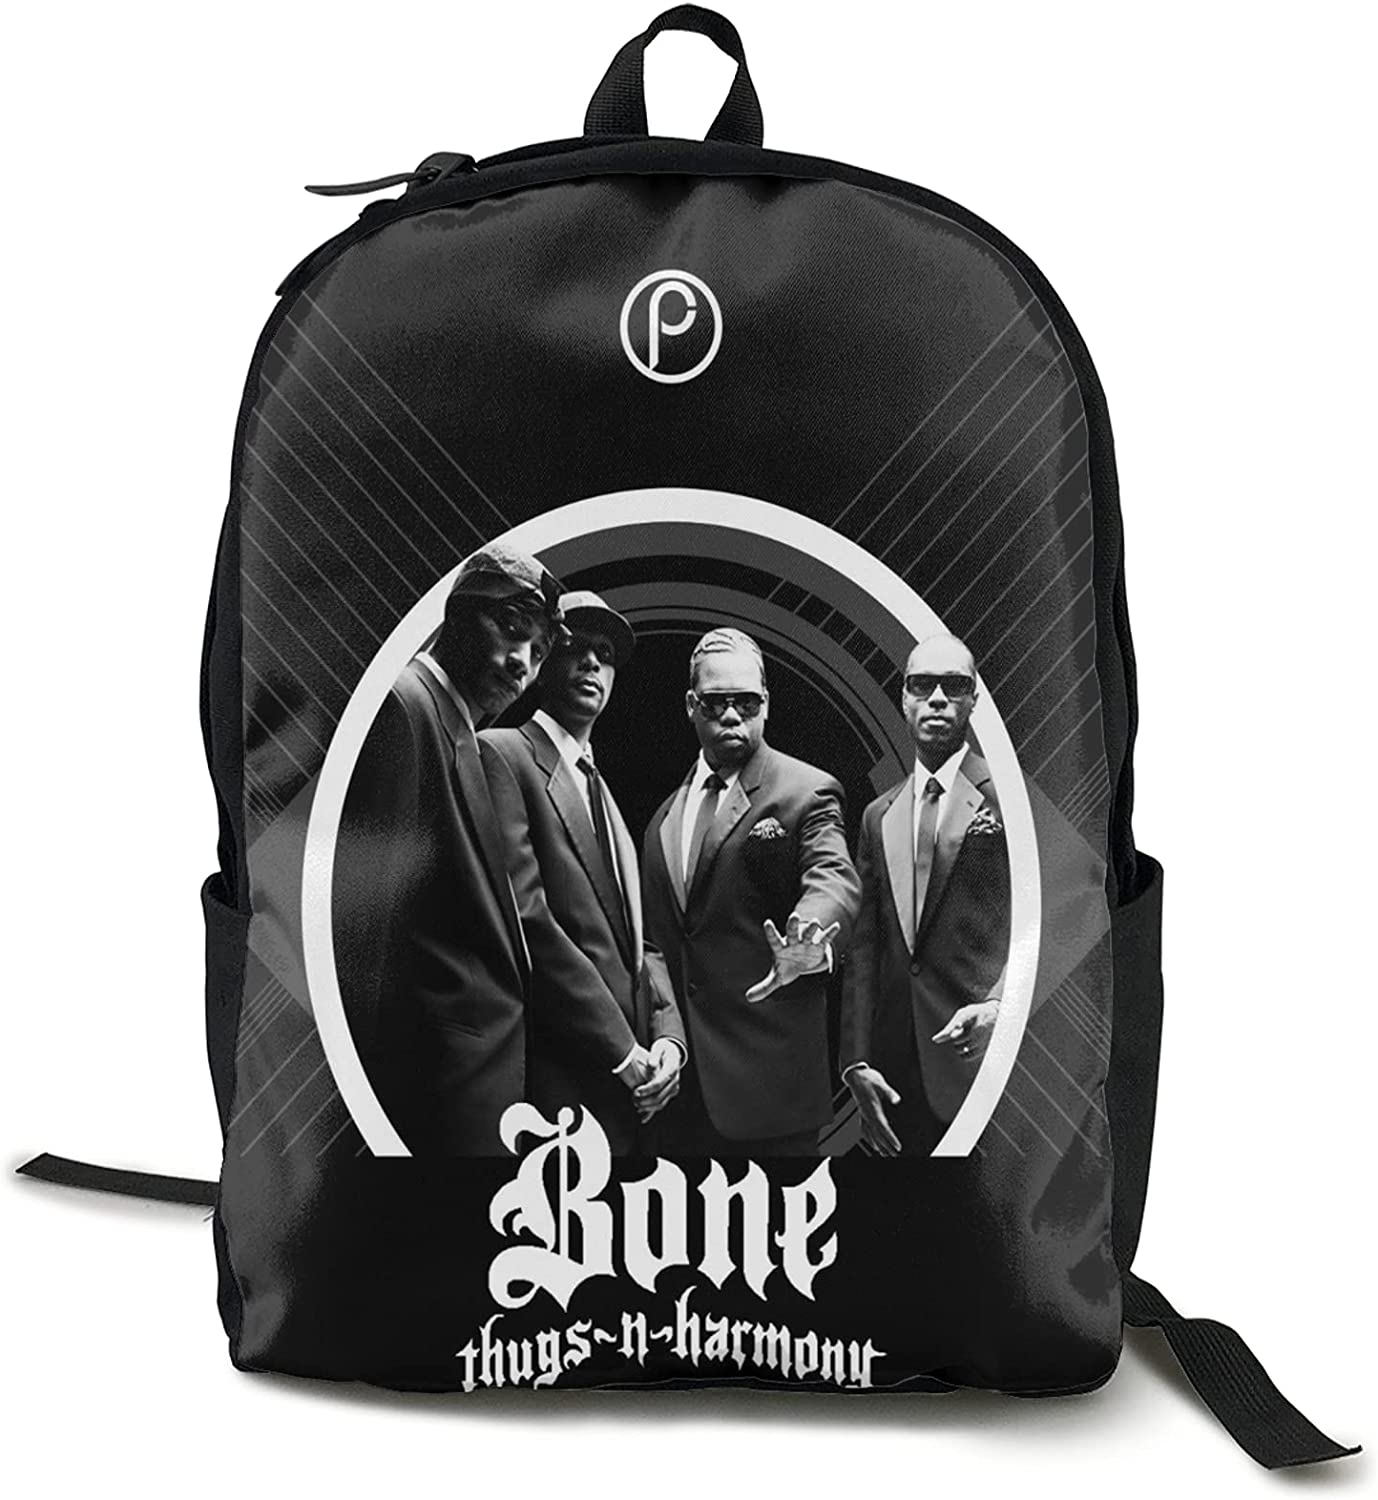 Bone Thugs N Harmony Fashion and Affordable Backpacks Travel Backpacks School Bags Laptop Bags Carrying Bags Outdoor Bags Unisex